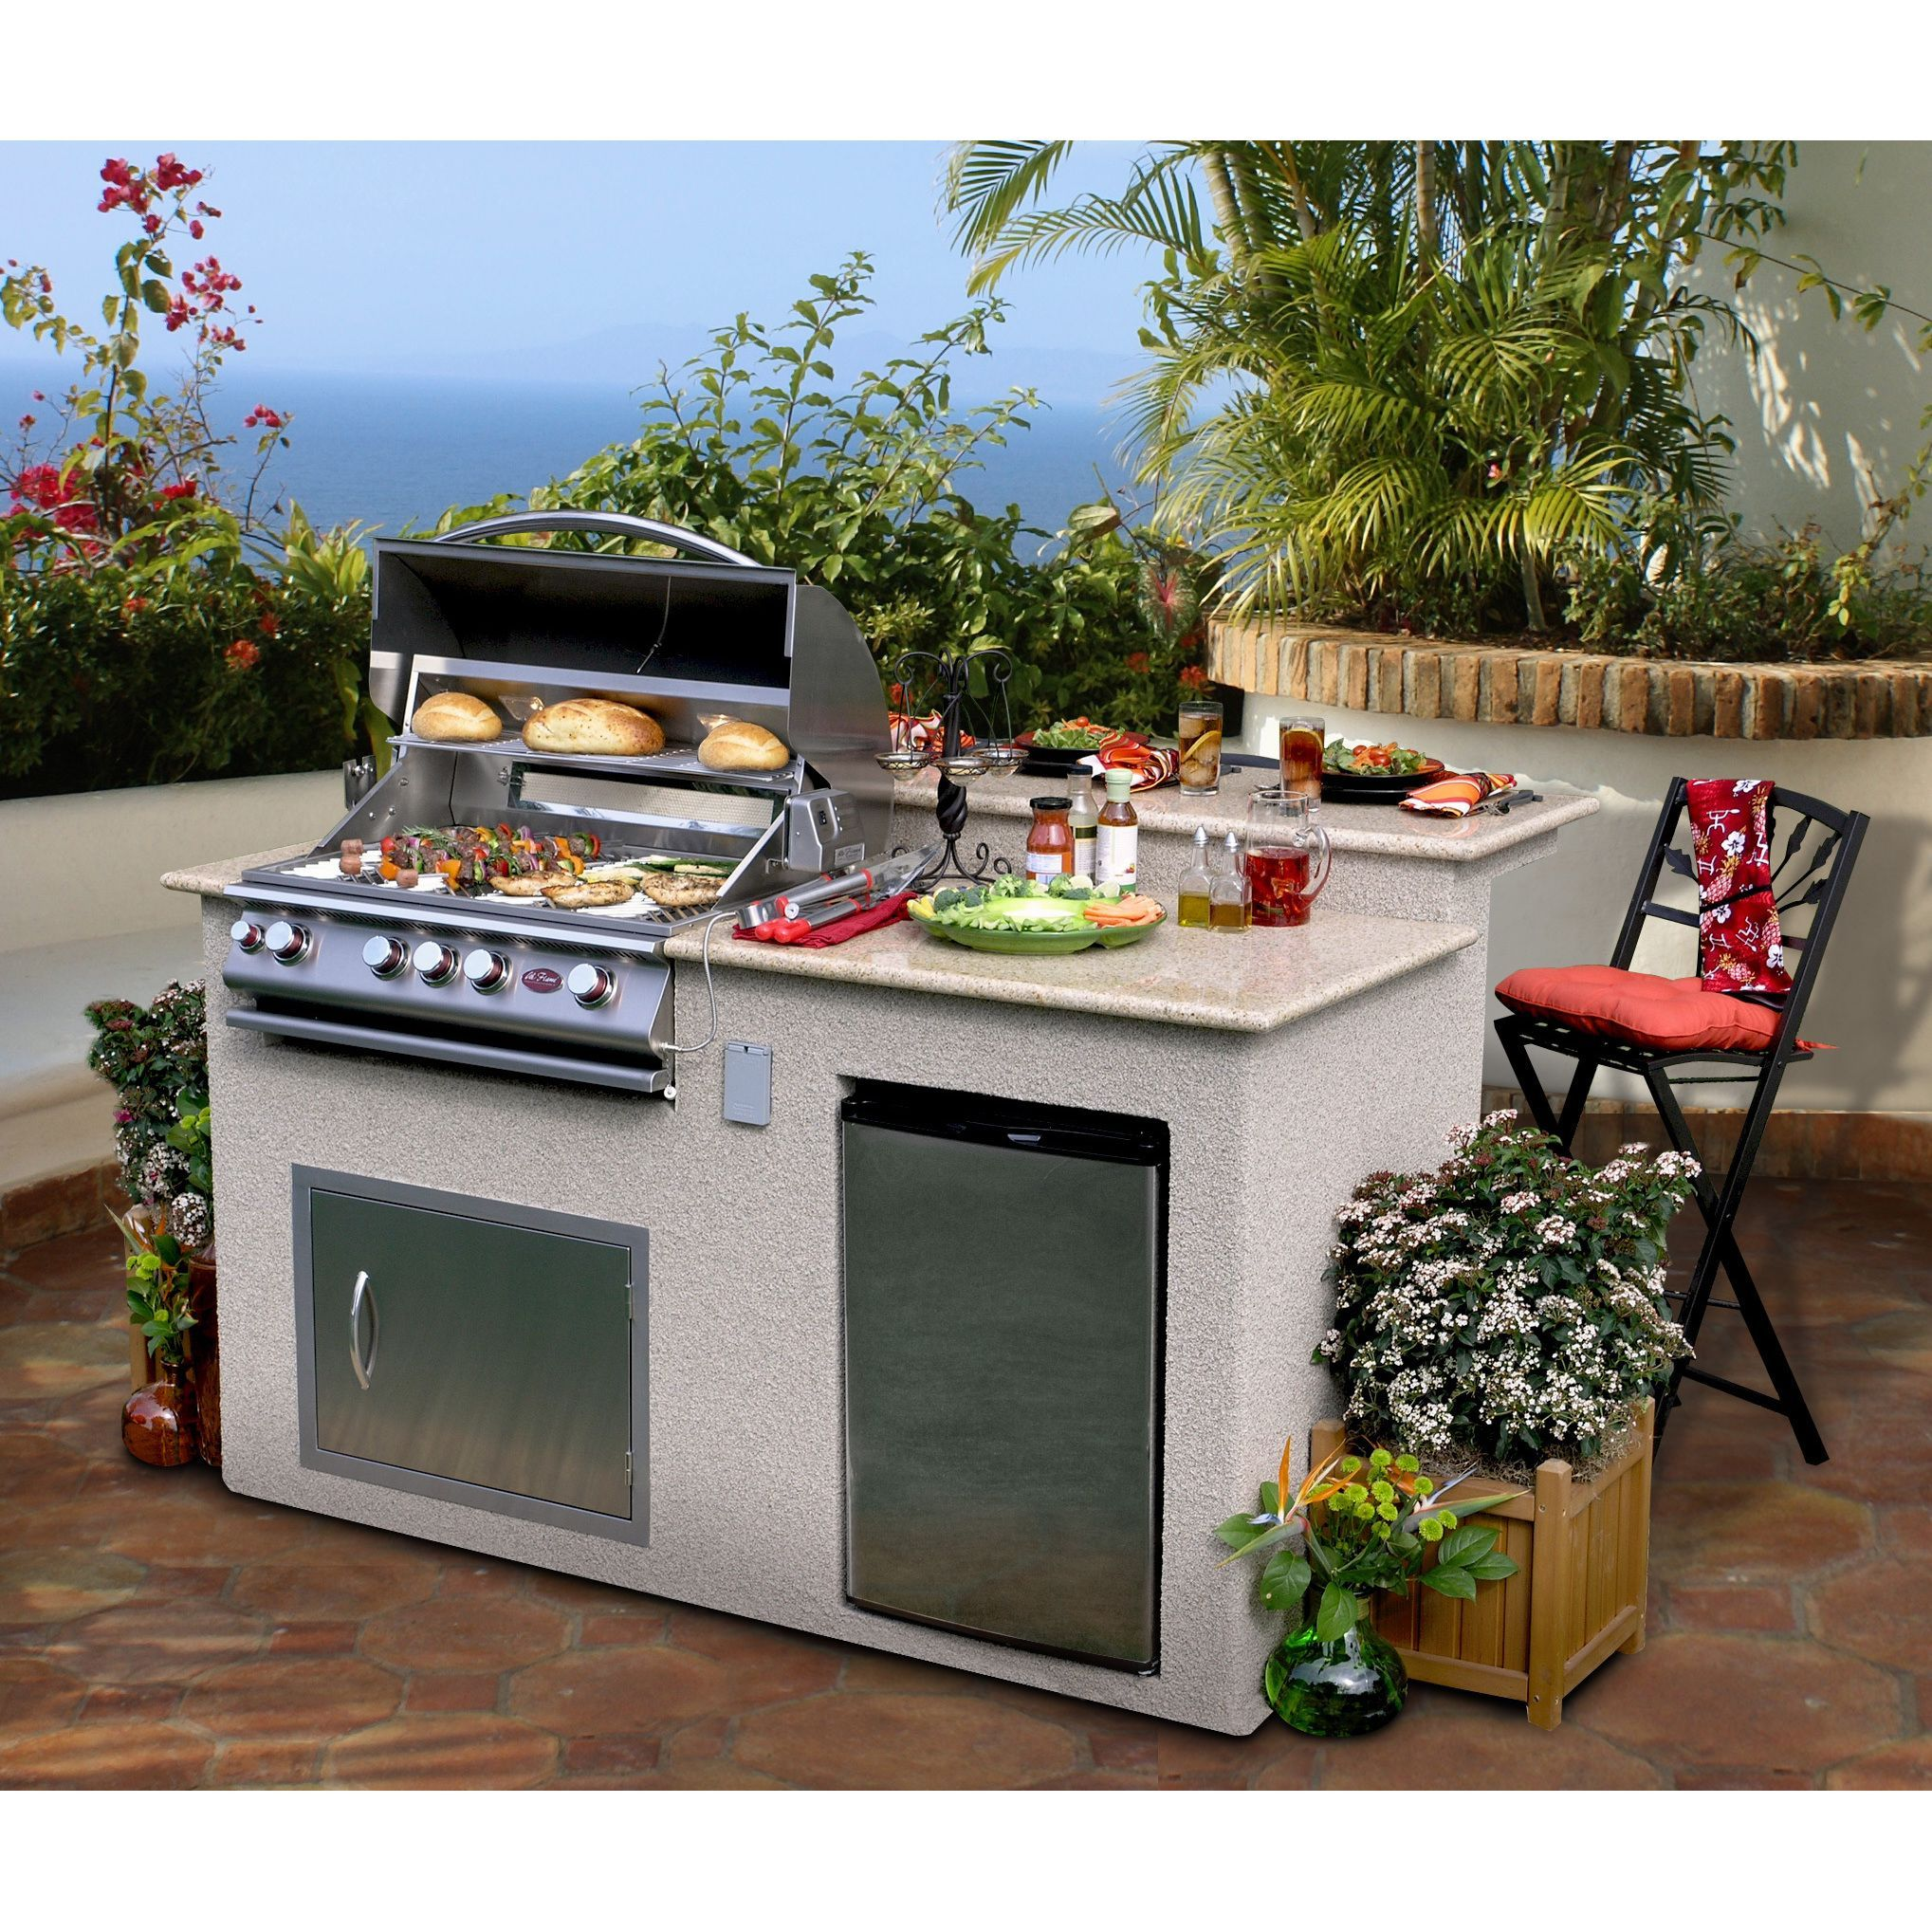 Online Shopping Bedding Furniture Electronics Jewelry Clothing More With Images Outdoor Kitchen Countertops Outdoor Kitchen